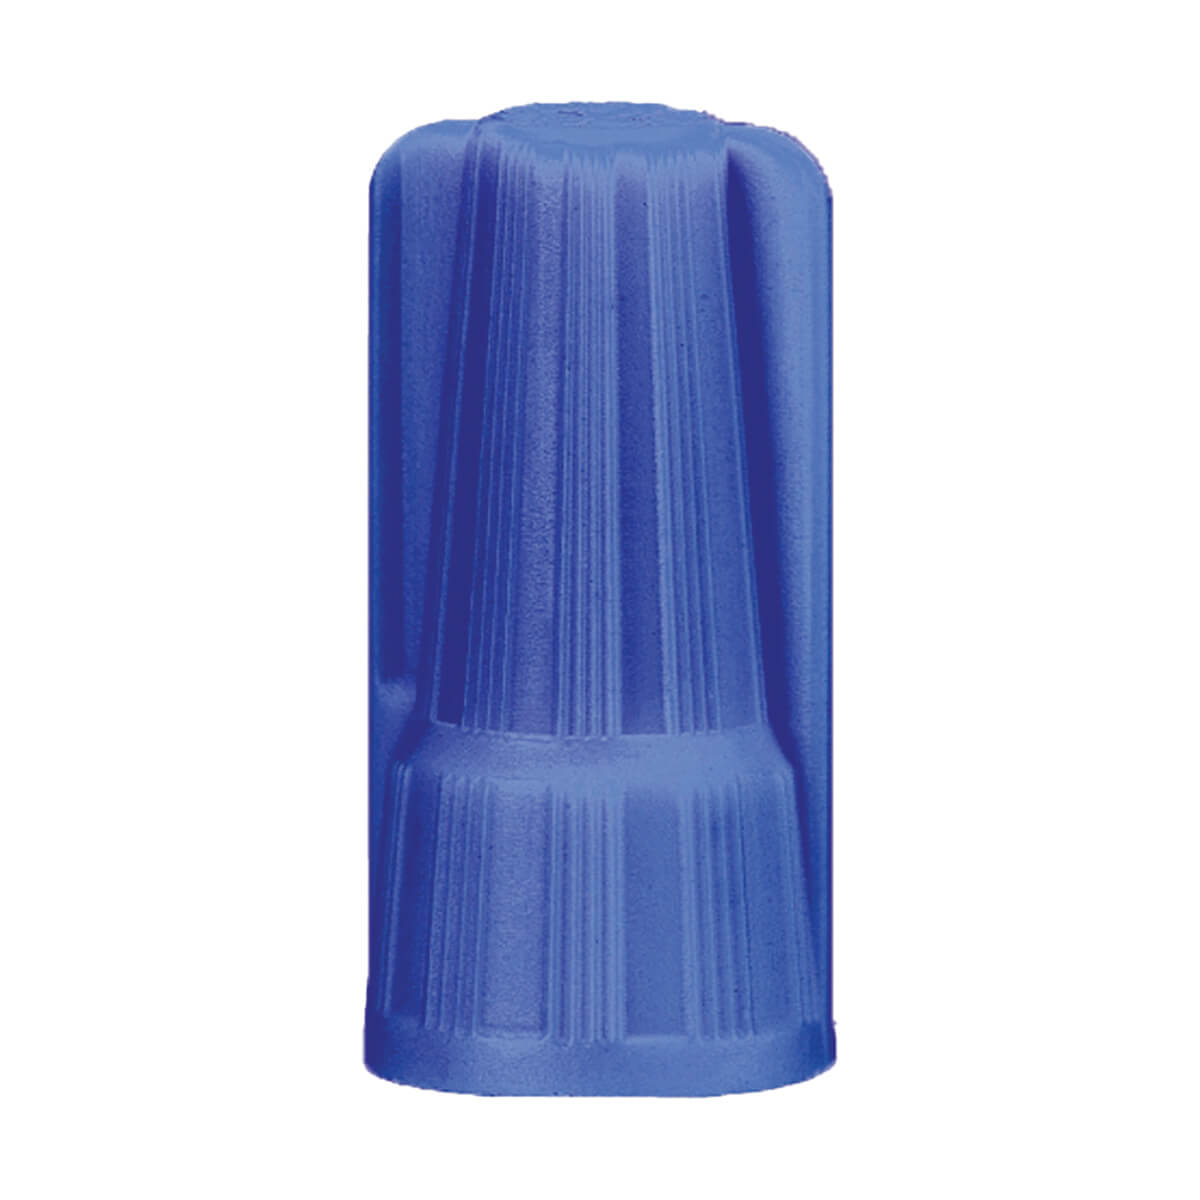 Winged Connector - 739 Blue - 15 Pack